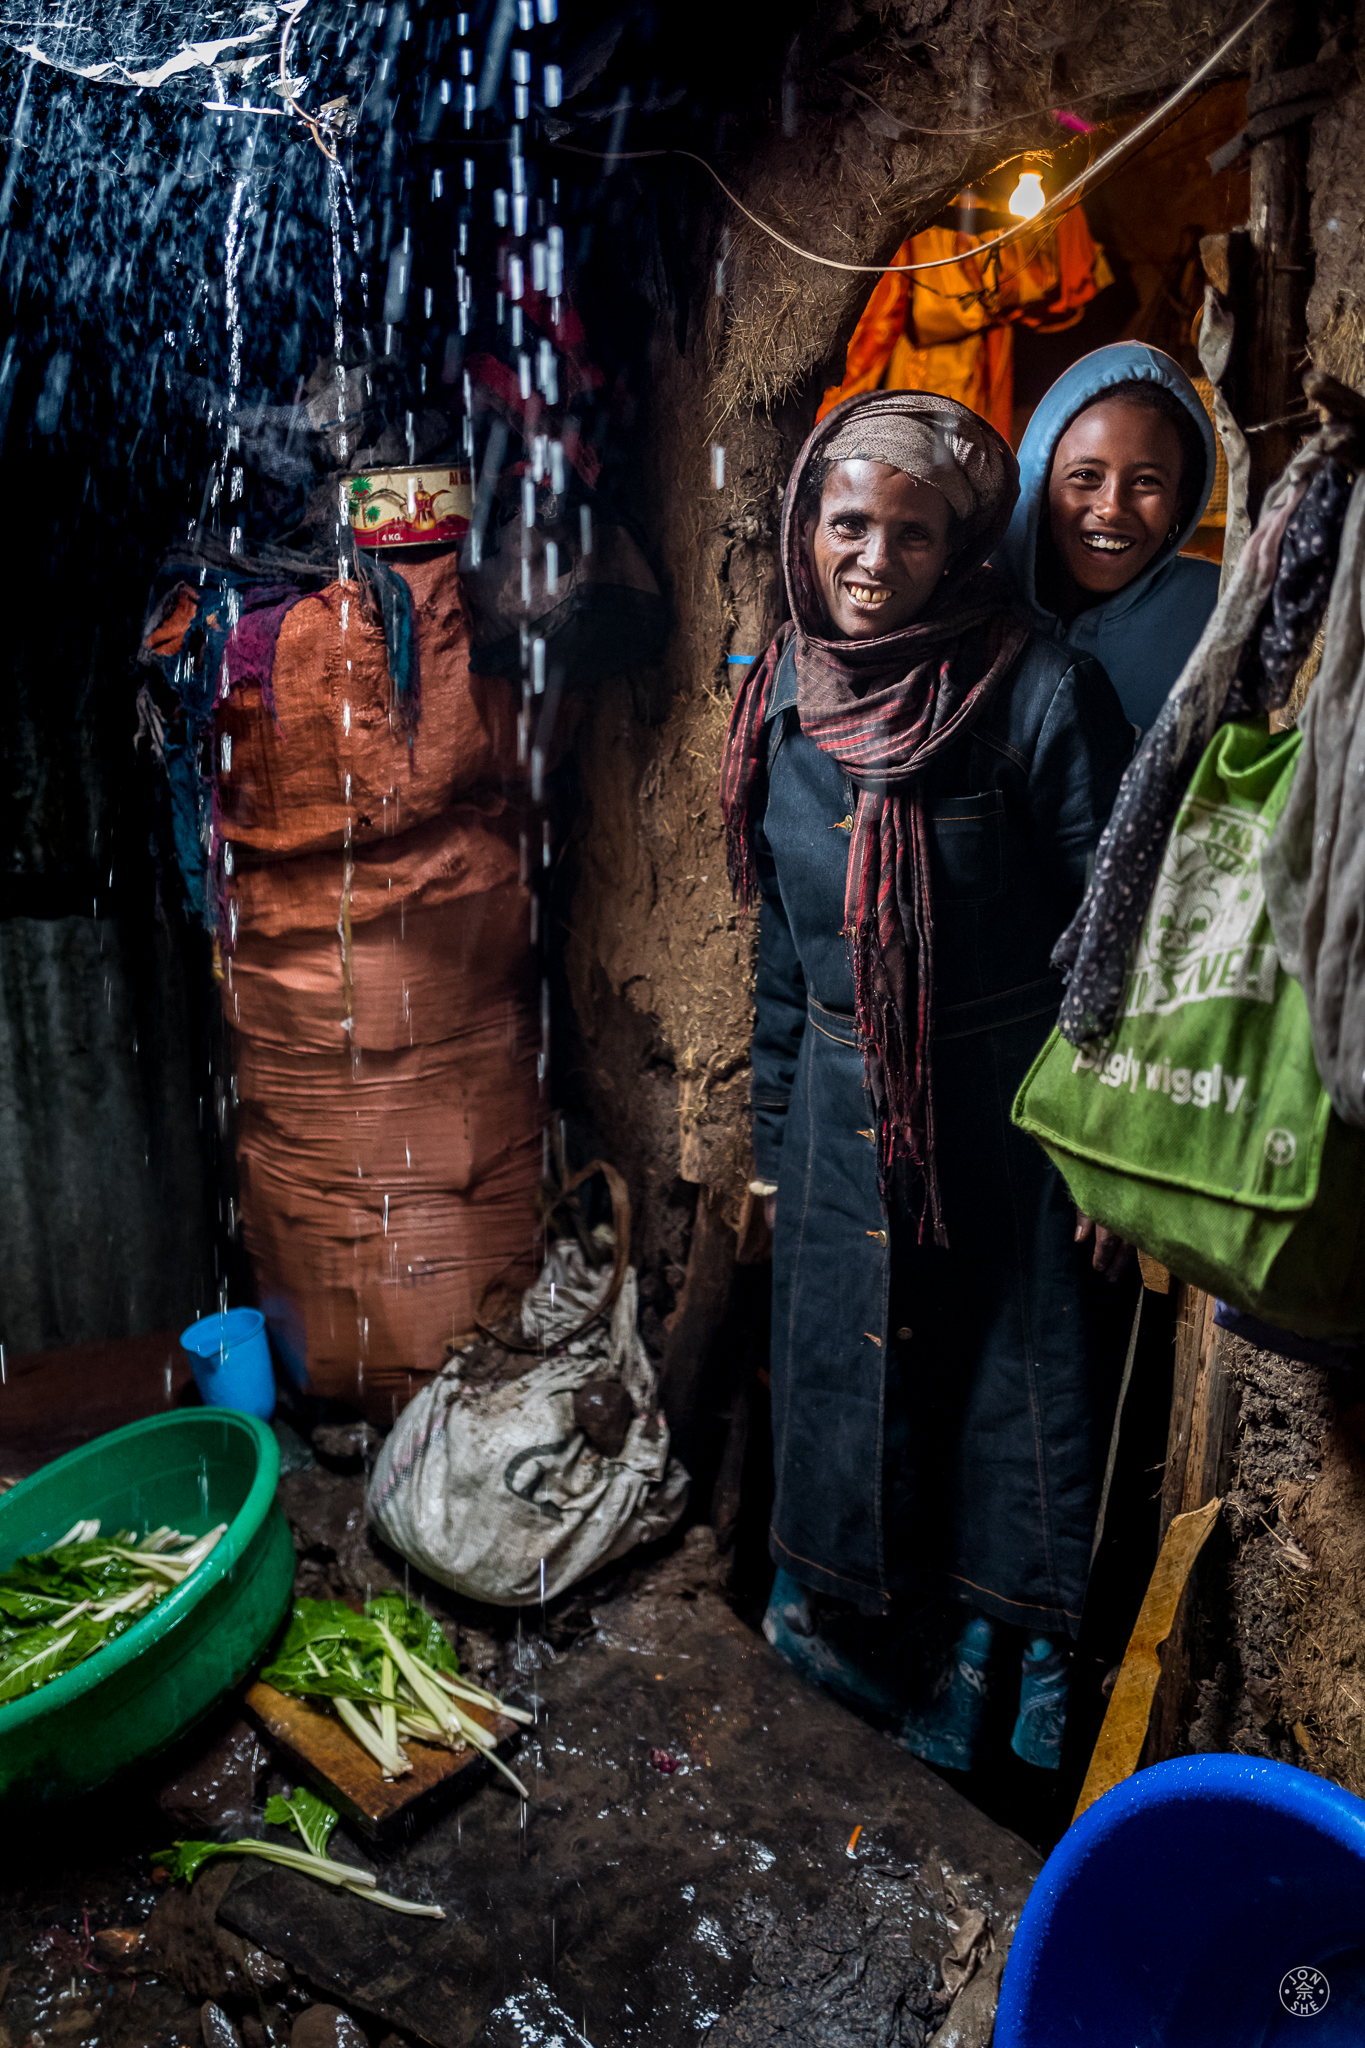 I was very touched by the warm hospitality extended to me by some of Strong Hearts' clients. This lady and her teenage daughter welcomed me into their one room windowless shack for a cup of coffee and for shelter from the torrential rain that day. They were preparing food on the ground of the alleyway just outside their doorway. Addis Ababa, Ethiopia. © Jon She 2017.